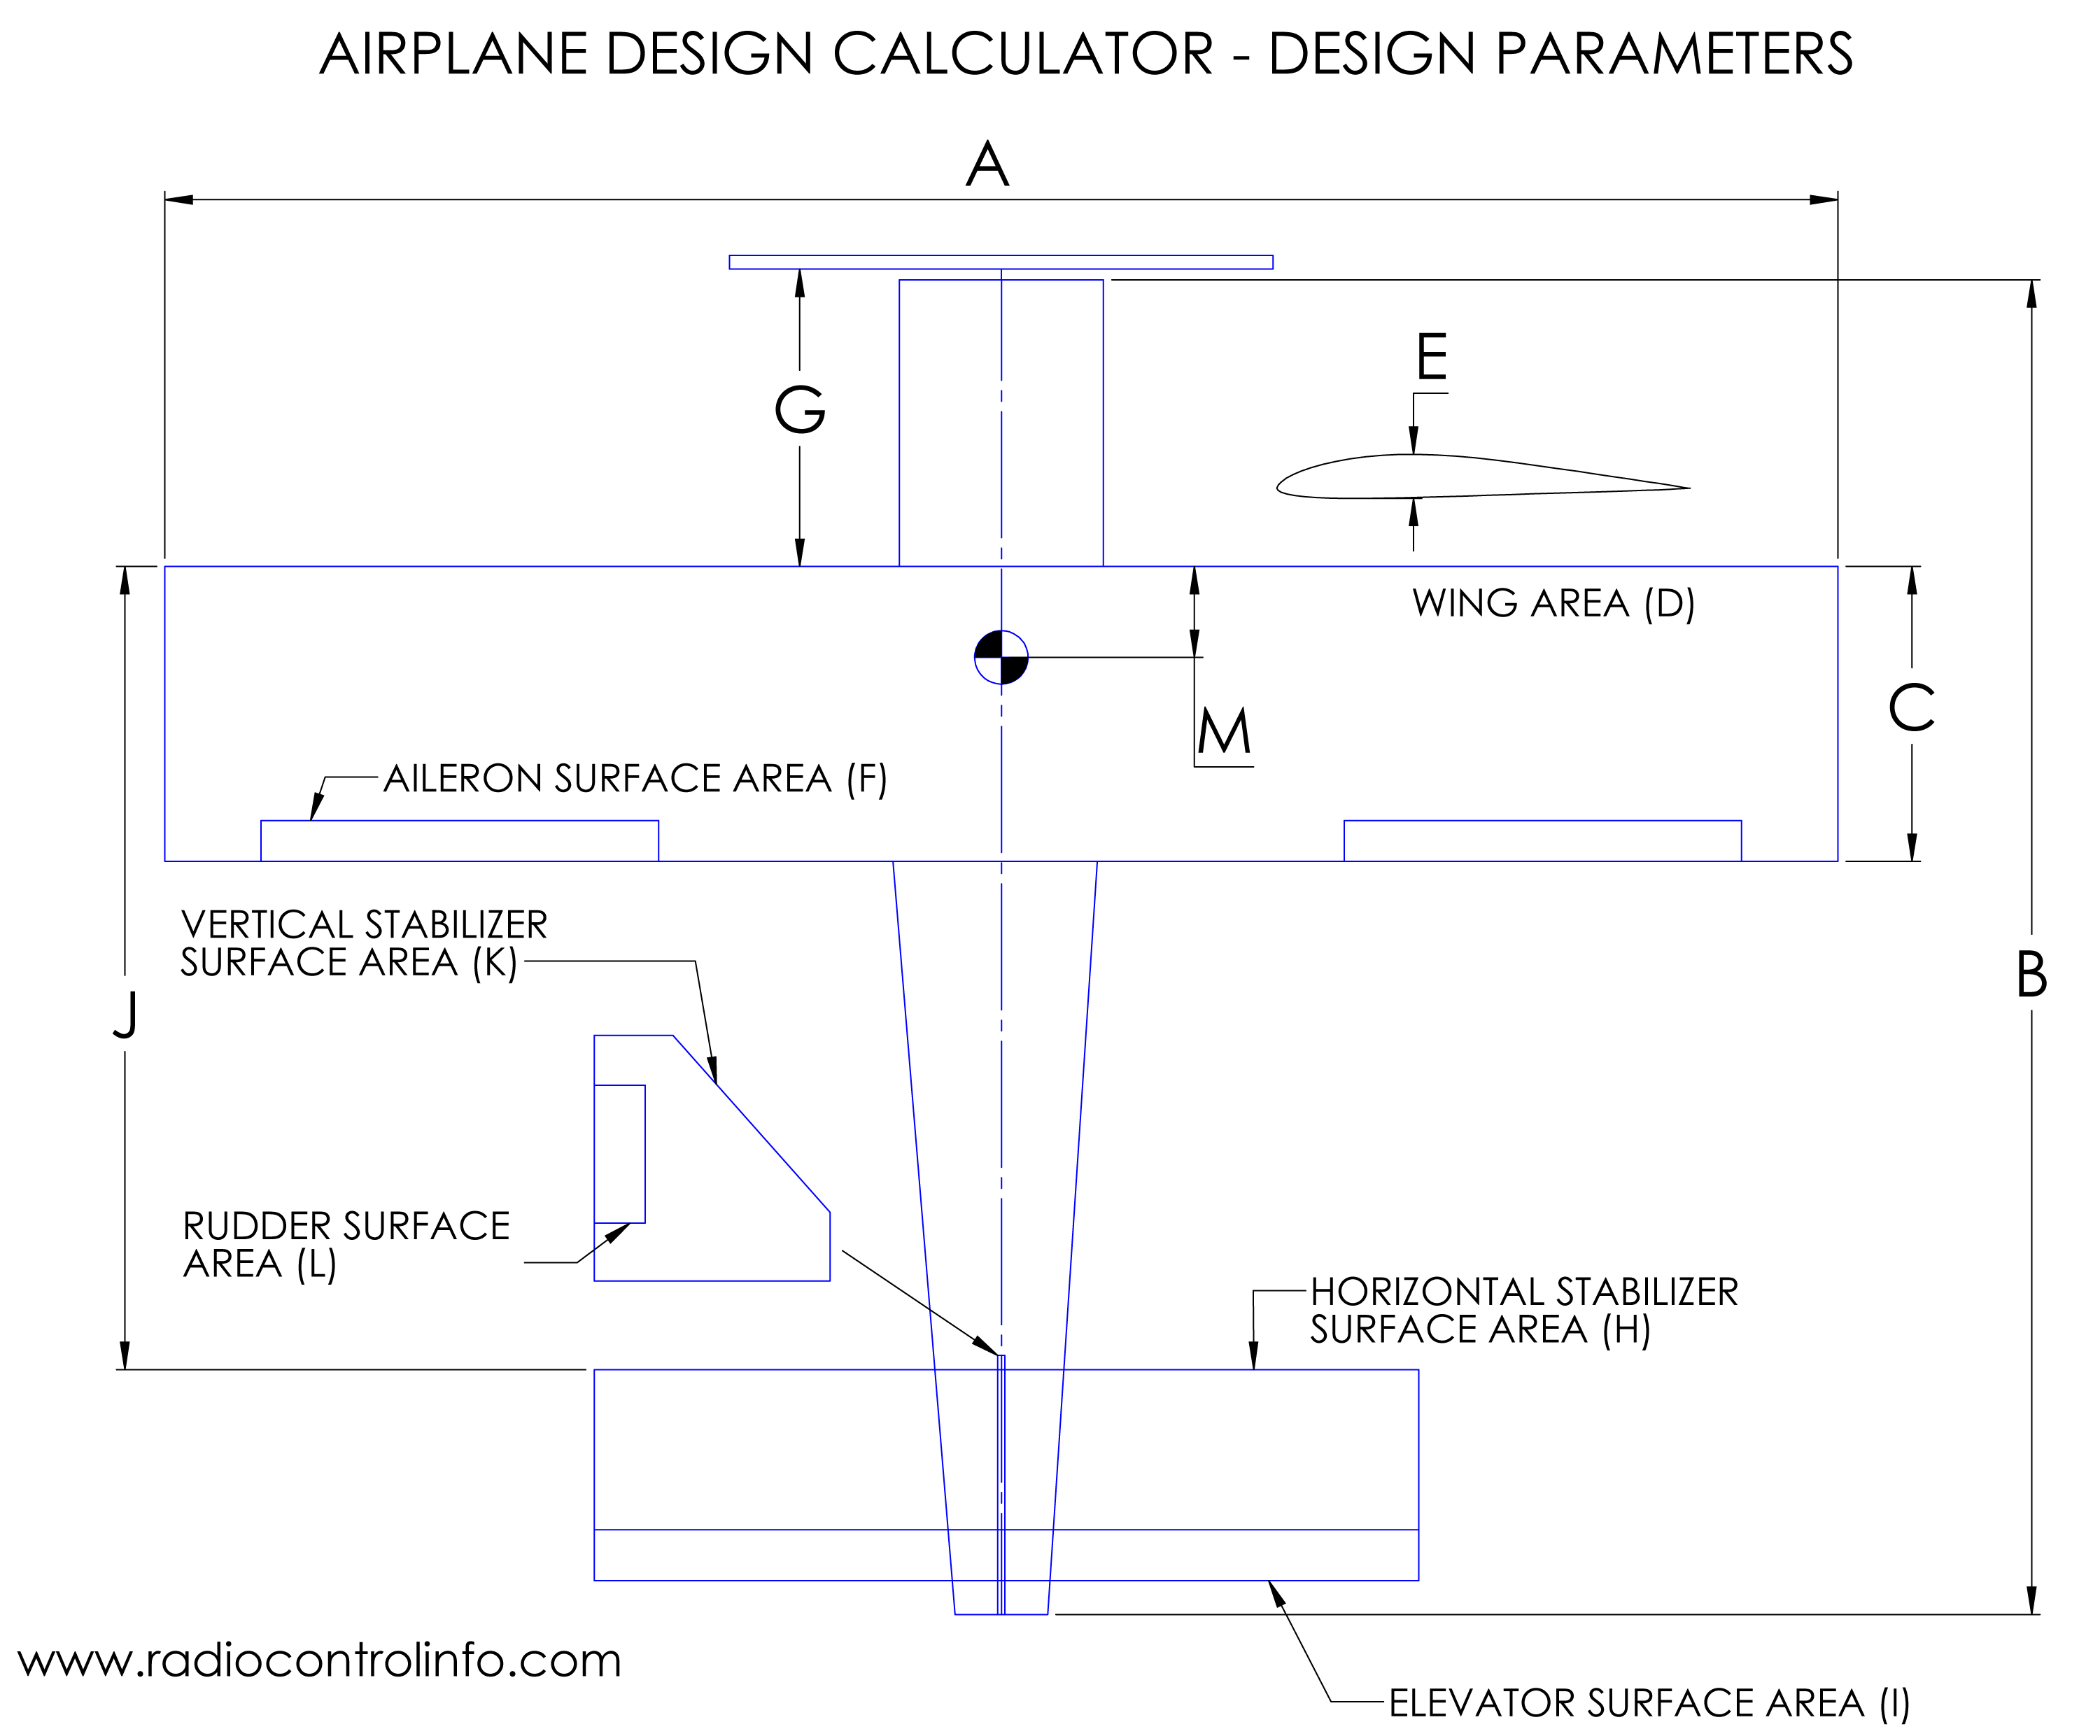 Airplane Design Calculator